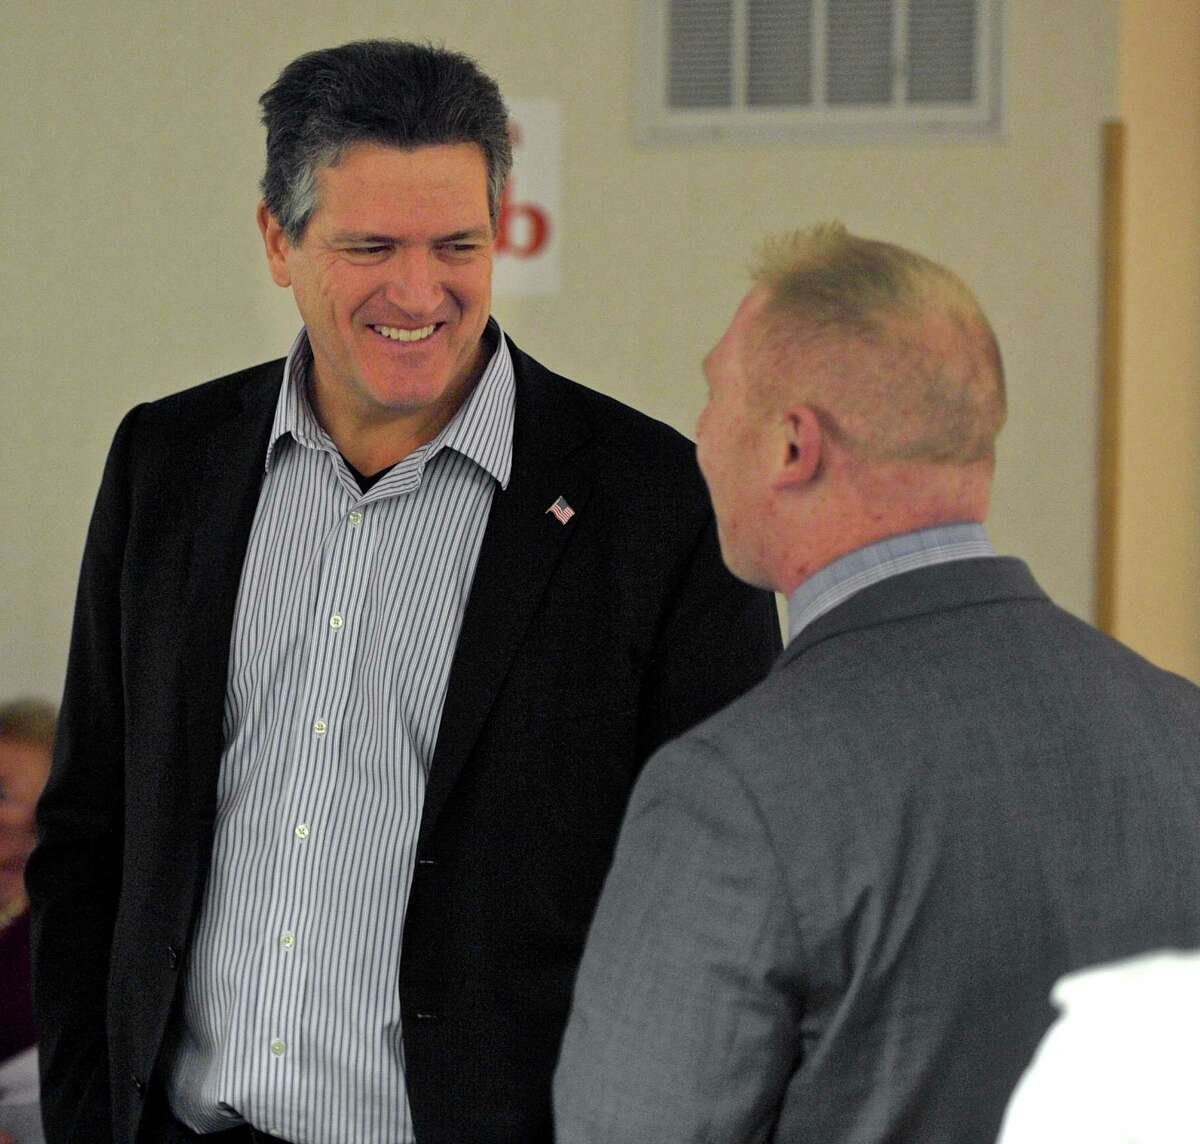 August Wolf, of Stamford, talks with State Representative Stephen Harding, of Brookfield, at the Connecticut Republican Party Presidential Straw Poll held in Brookfield, Conn, on Friday night, January 15, 2016. Wolf is running for the U.S. Senate.